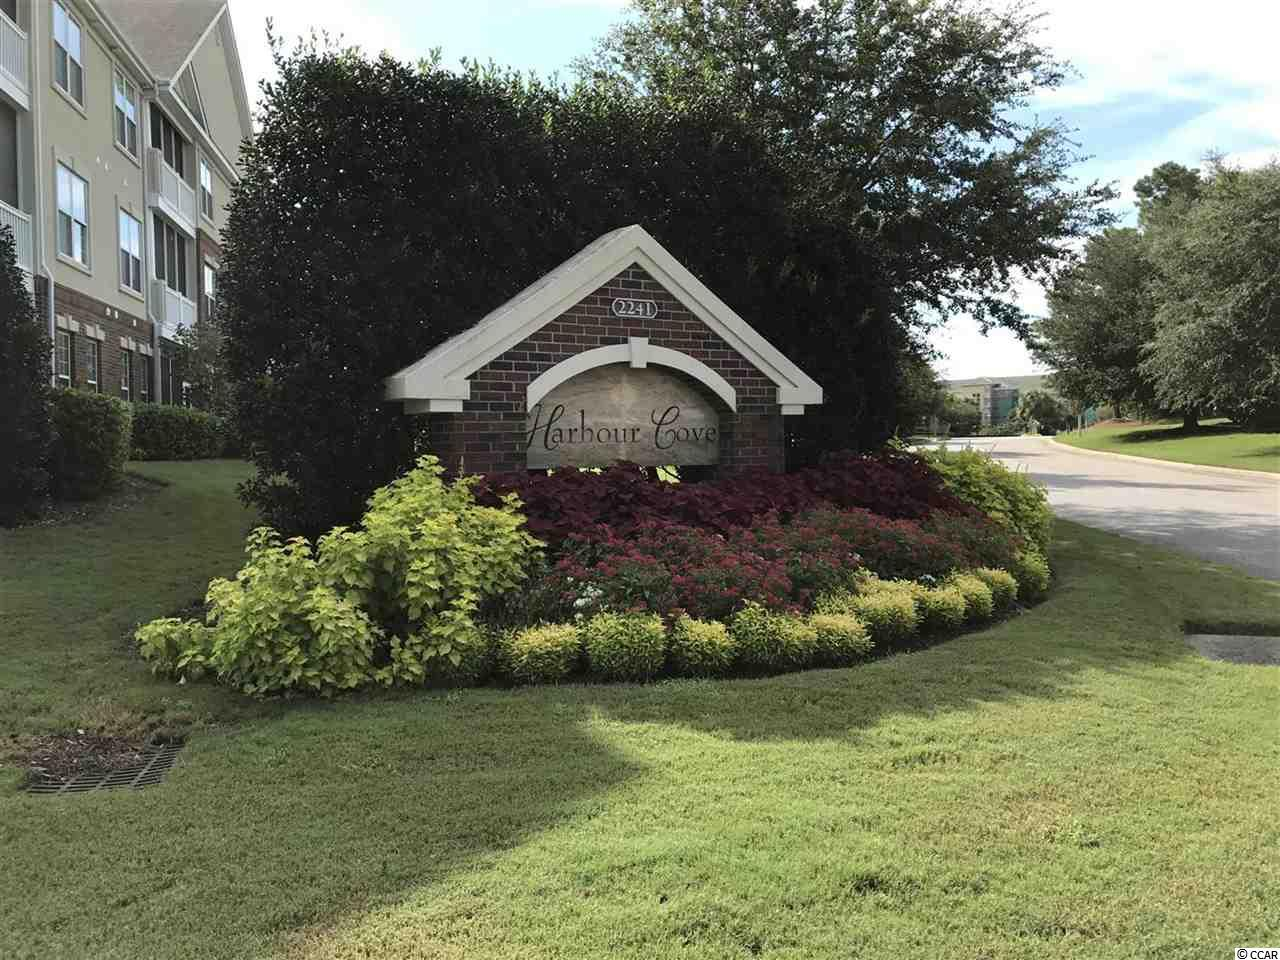 Harbour Cove Bldg 4 condo for sale in North Myrtle Beach, SC